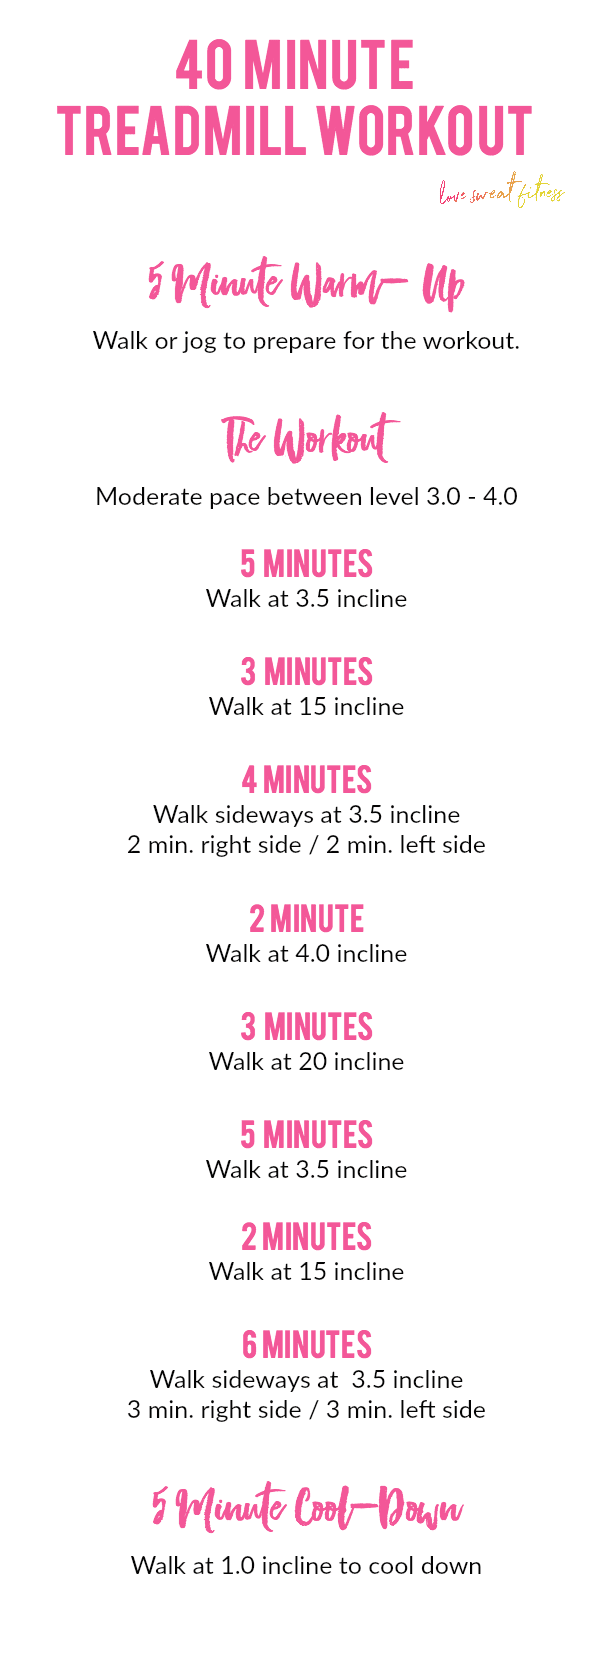 3 Cardio Workouts That Don't Suck - Love Sweat Fitness